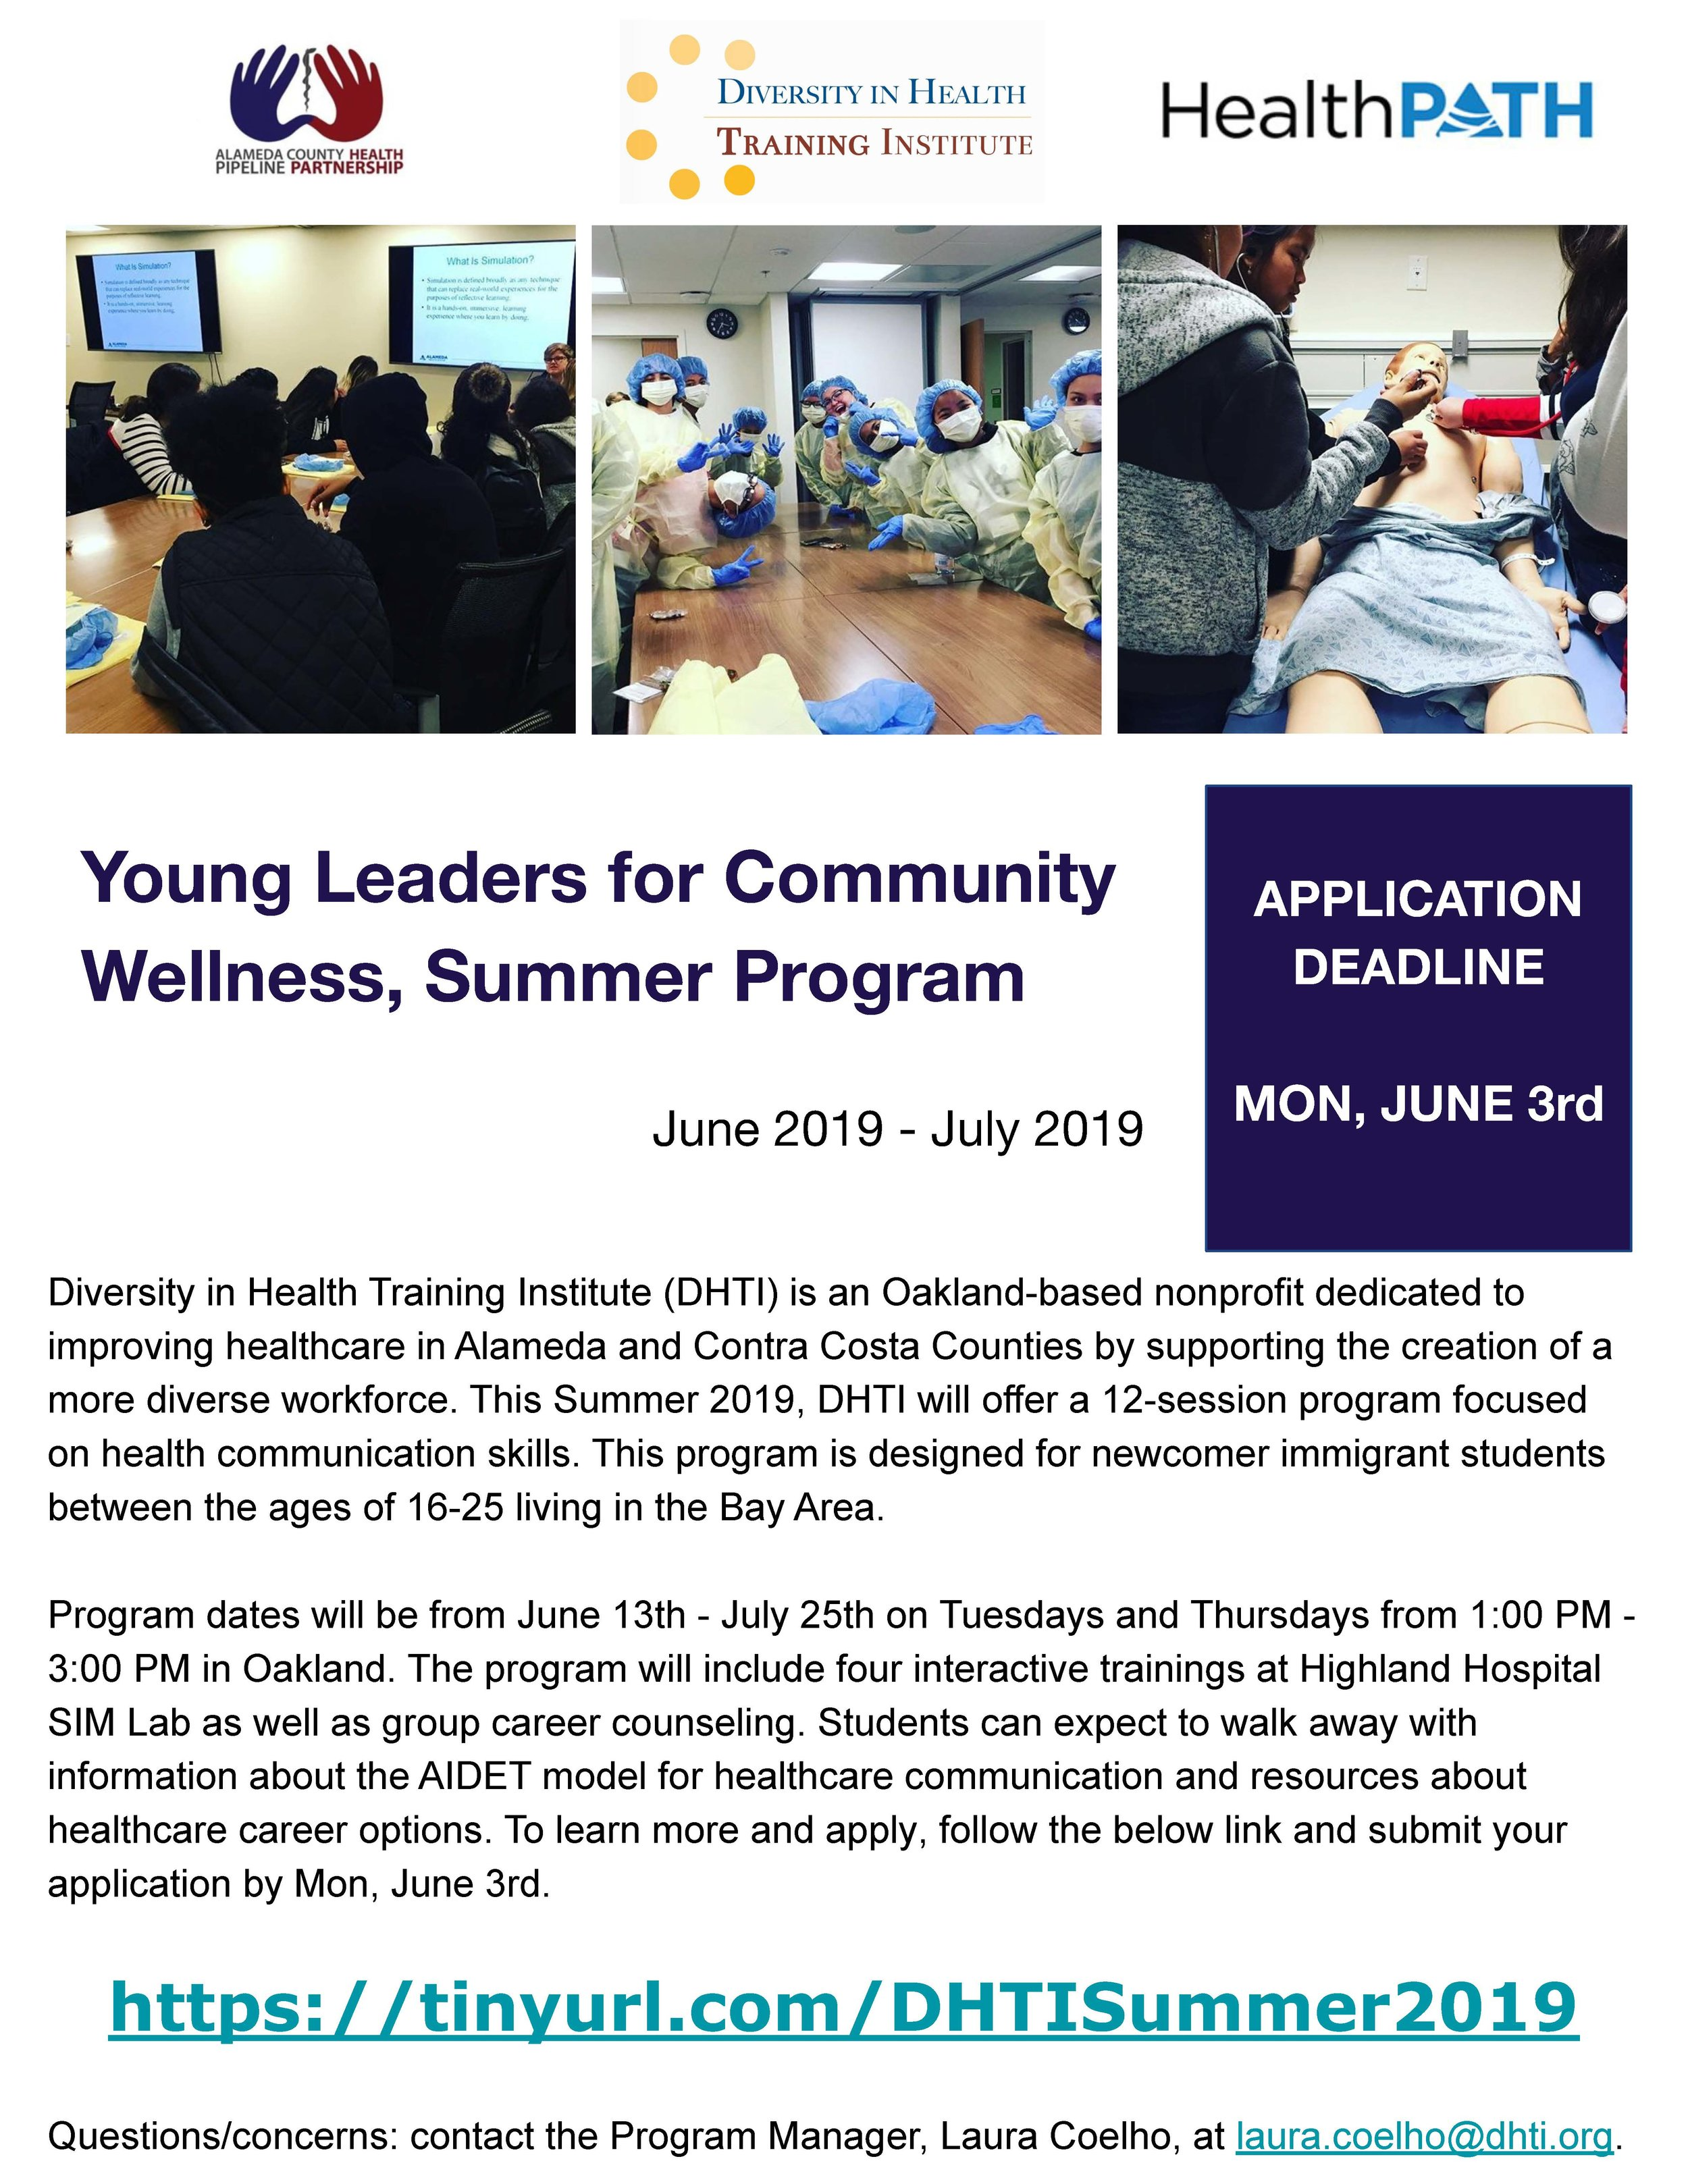 YL4CW Summer Program - Diversity in Health Training Institute (DHTI) is an Oakland-based nonprofit dedicated to improving healthcare in Alameda and Contra Costa Counties by supporting the creation of a more diverse workforce. This Summer 2019, DHTI will offer a 12-session program focusedon health communication skills. This program is designed for newcomer immigrant students between the ages of 16-25 living in the Bay Area.Program dates will be from June 13th - July 25th on Tuesdays and Thursdays from 1:00 PM -3:00 PM in Oakland. The program will include four interactive trainings at Highland HospitalSIM Lab as well as group career counseling. Students can expect to walk away with information about the AIDET model for healthcare communication and resources abouthealthcare career options.To learn more and apply, follow the below link and submit your application by Mon, June 3rd.https://tinyurl.com/DHTISummer2019Questions/concerns: contact the Program Manager, Laura Coelho, at laura.coelho@dhti.org.